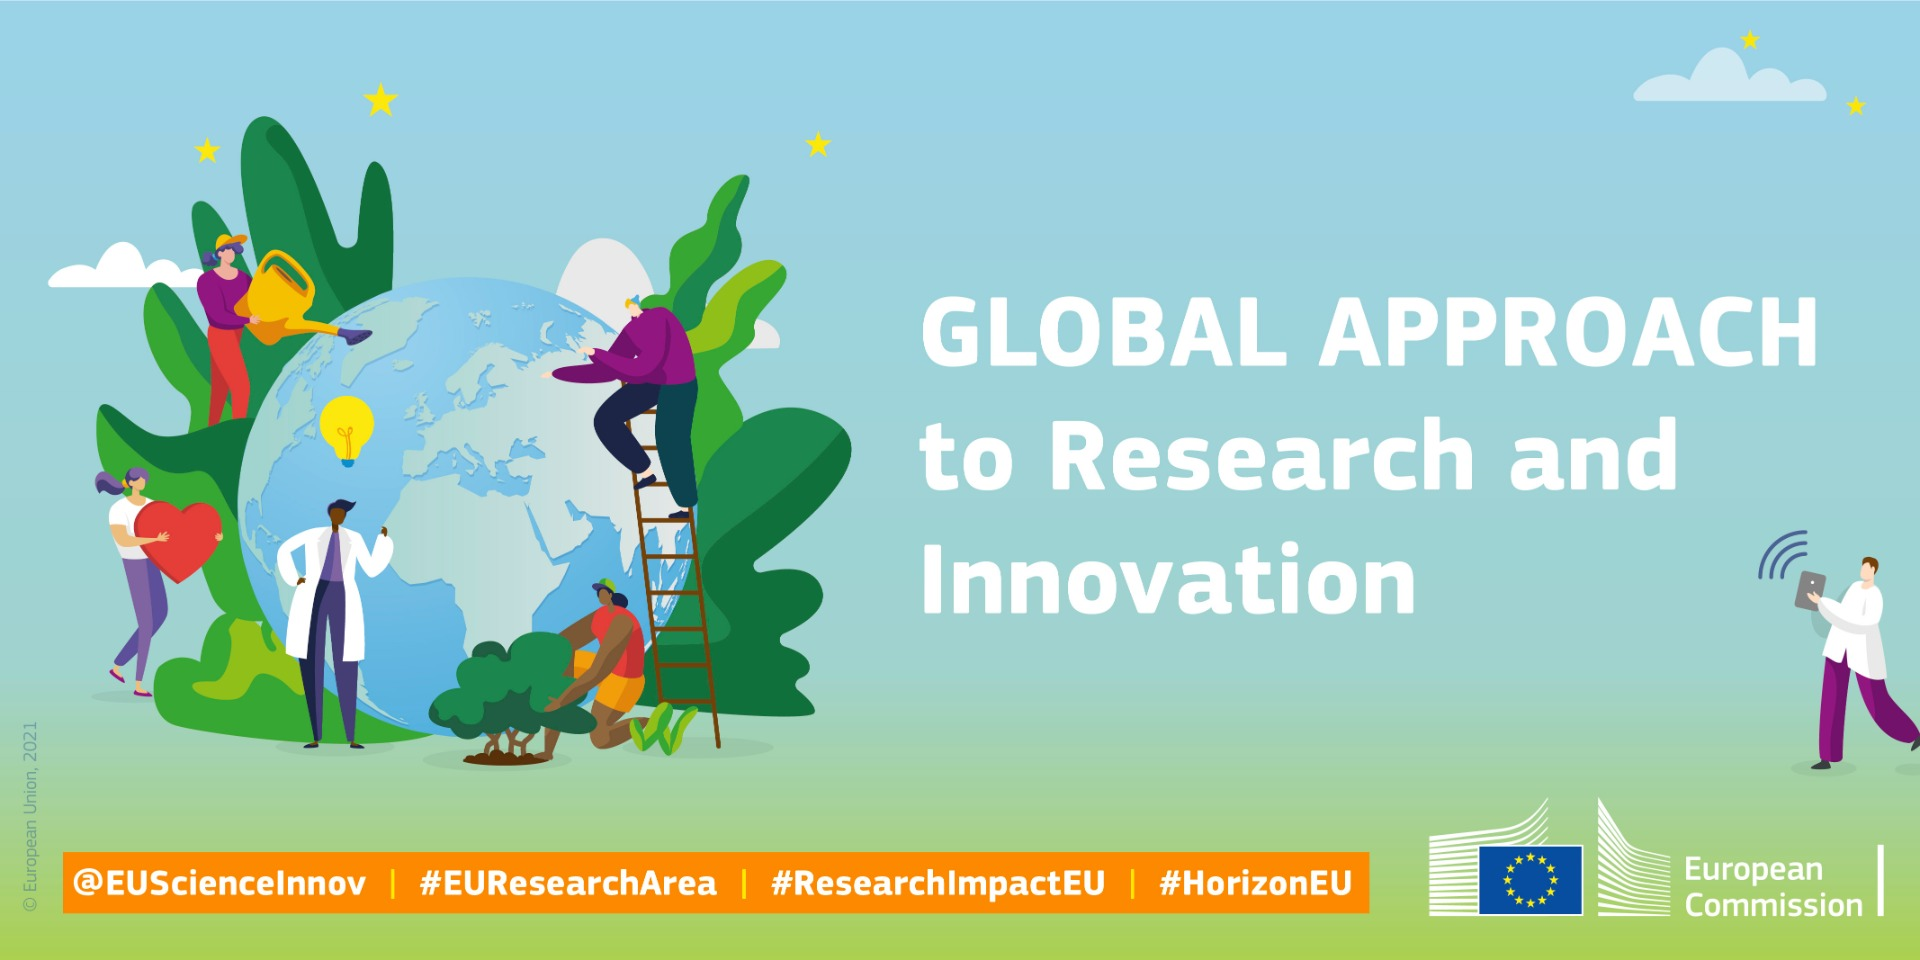 Horizon Europe Regional Virtual Workshop Addressing EUROMED Common Challenges through Research and Innovation Cooperation